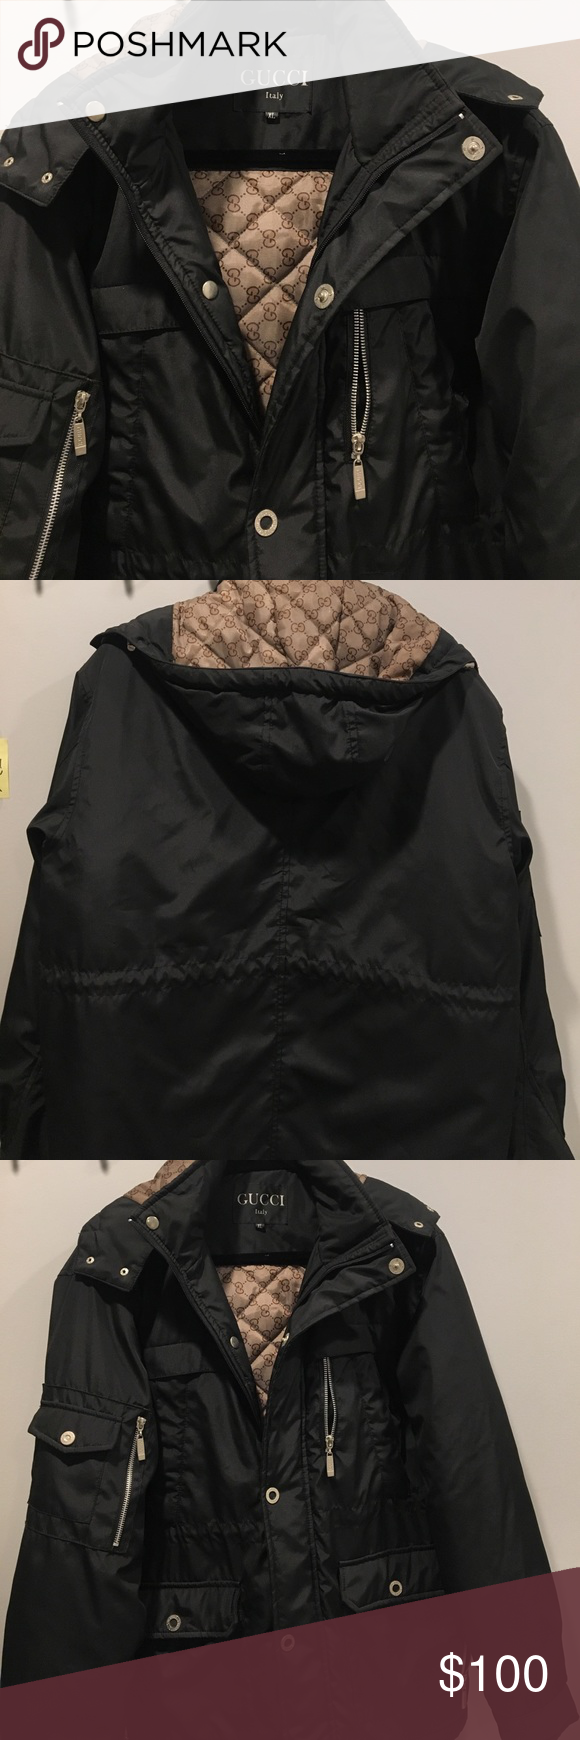 Gucci black puffy coat Black Gucci lined with monogram coat. Has inner drawstring for waist adjustment. Removable hoodie. Size XL. I would say fits M-L Gucci Jackets & Coats Puffers